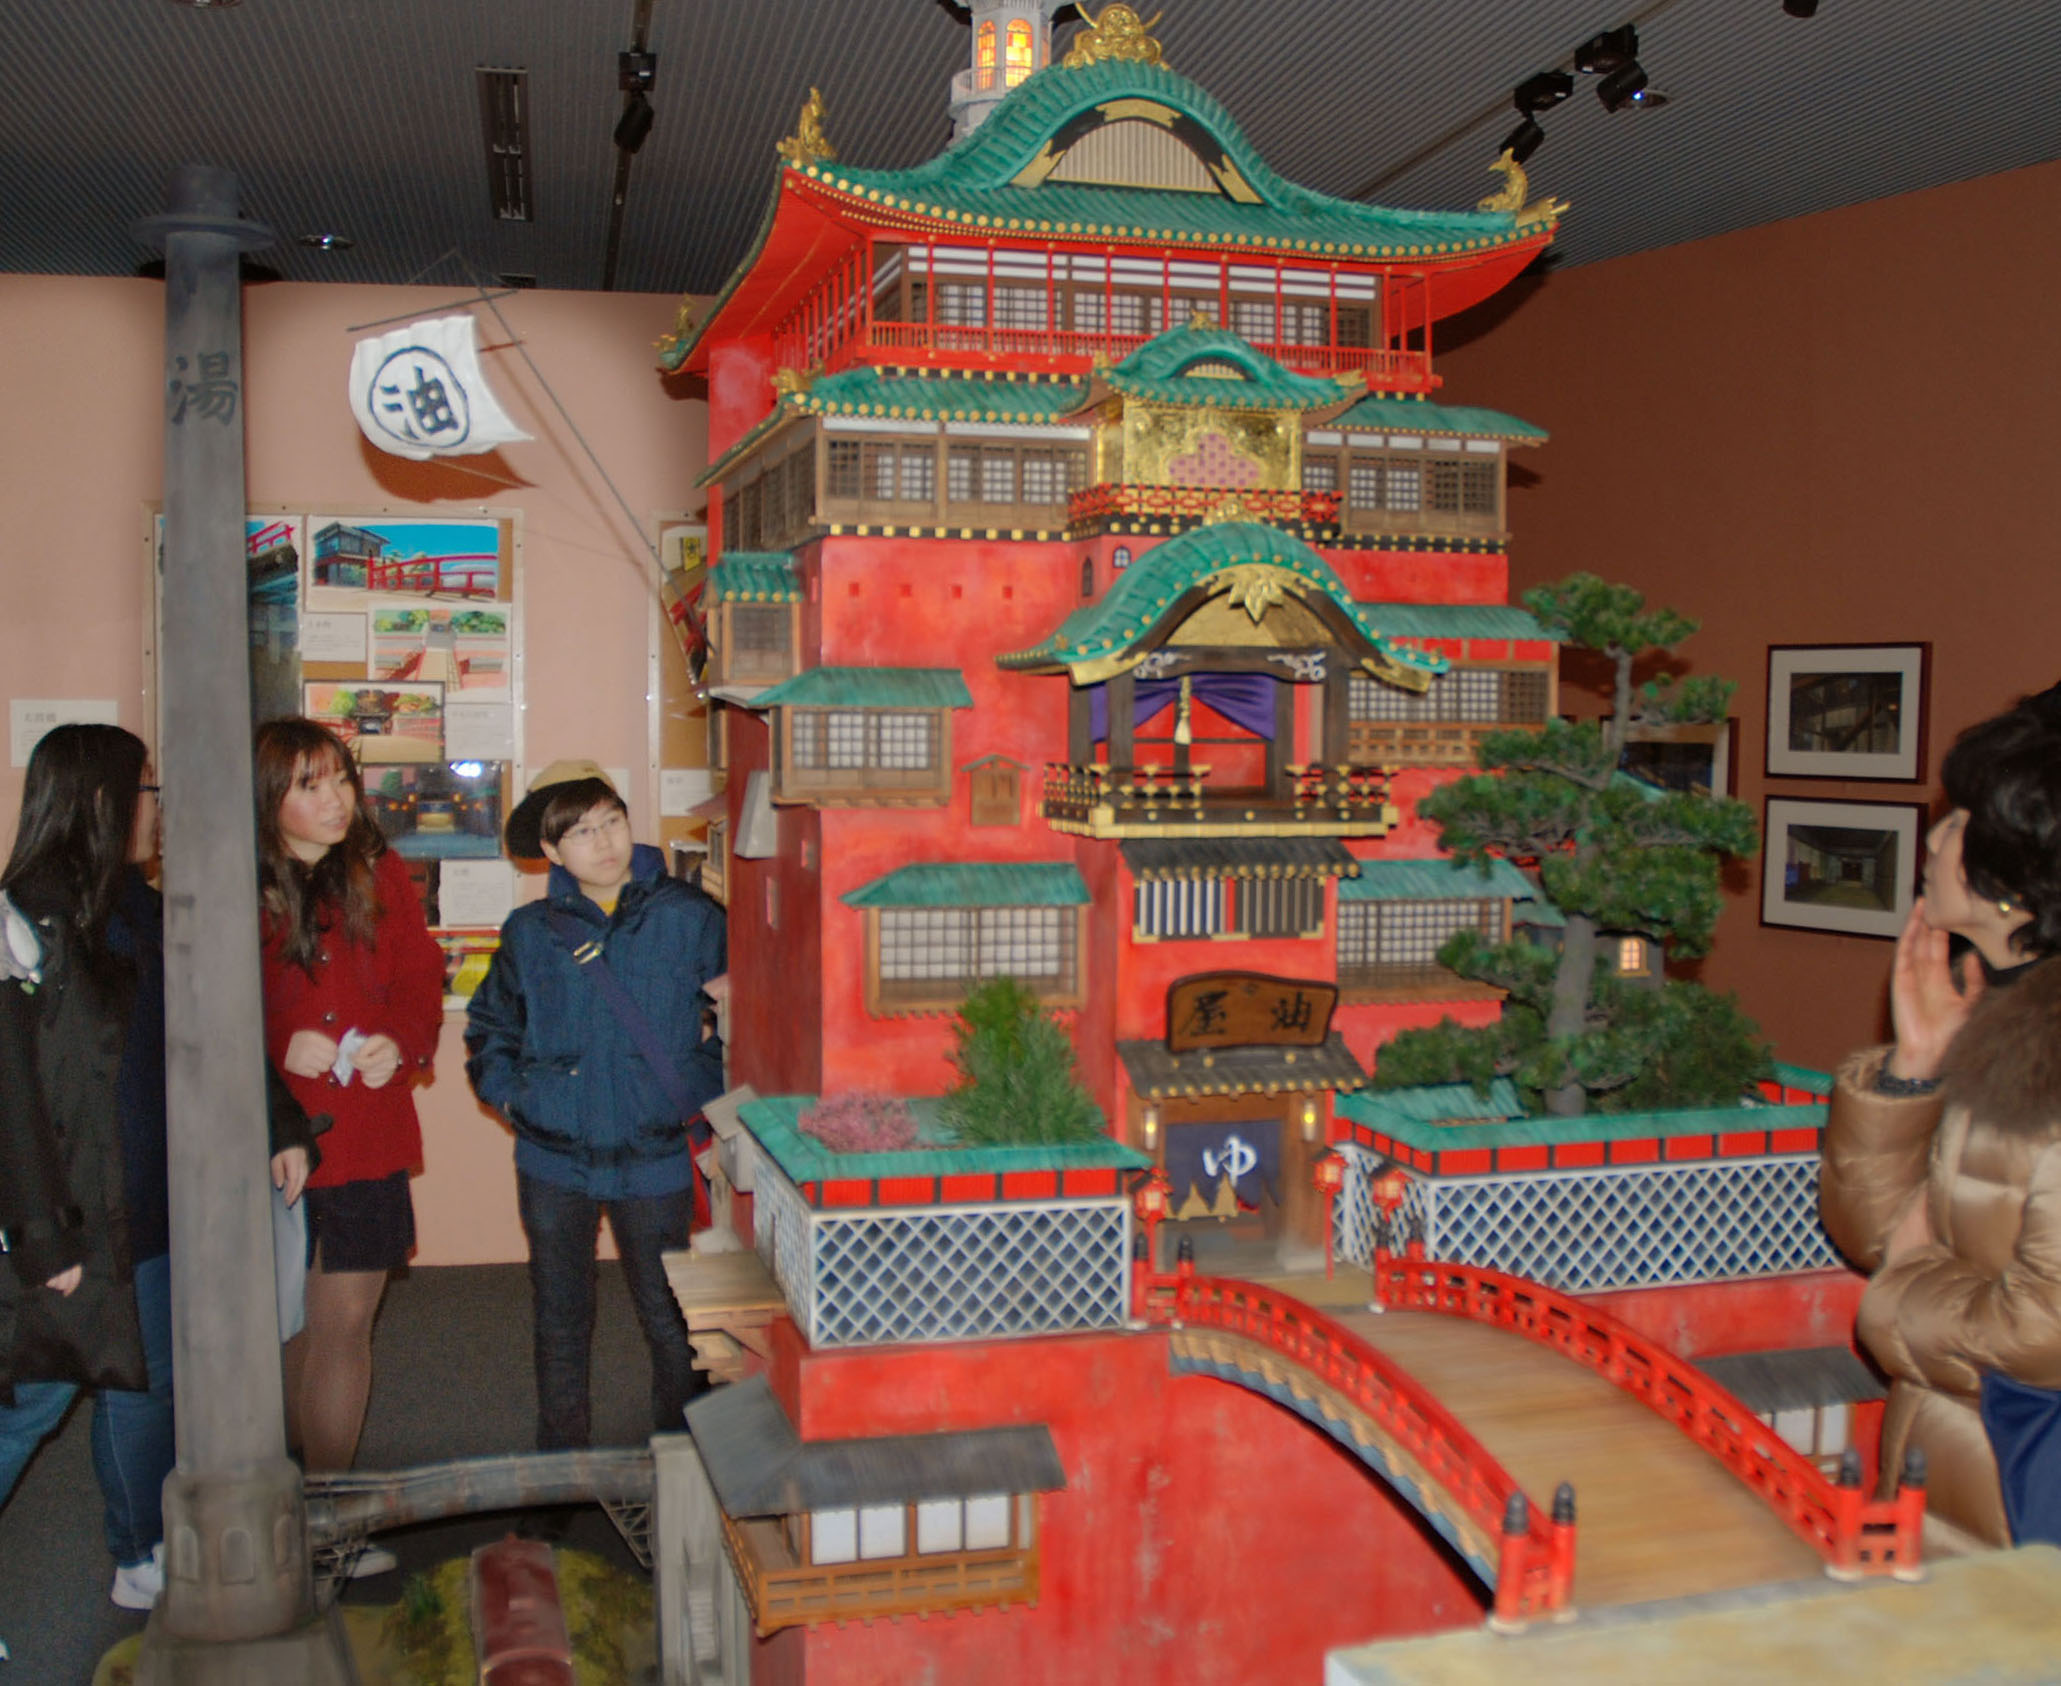 D Architectural Ghibli Exhibition : Architecture museum s ghibli exhibition a major hit in